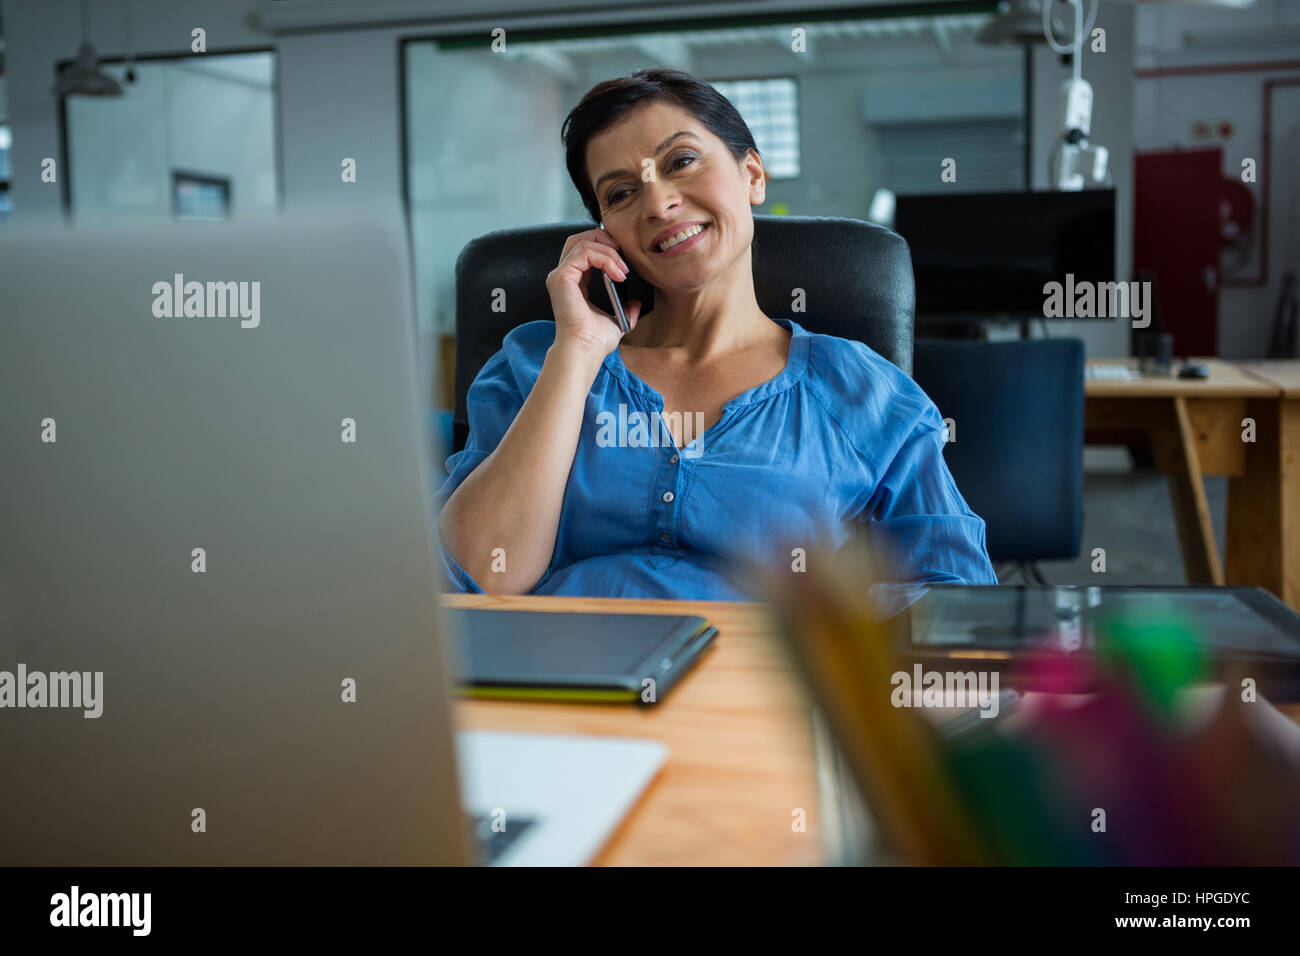 Female graphic designer talking on mobile phone in creative office - Stock Image